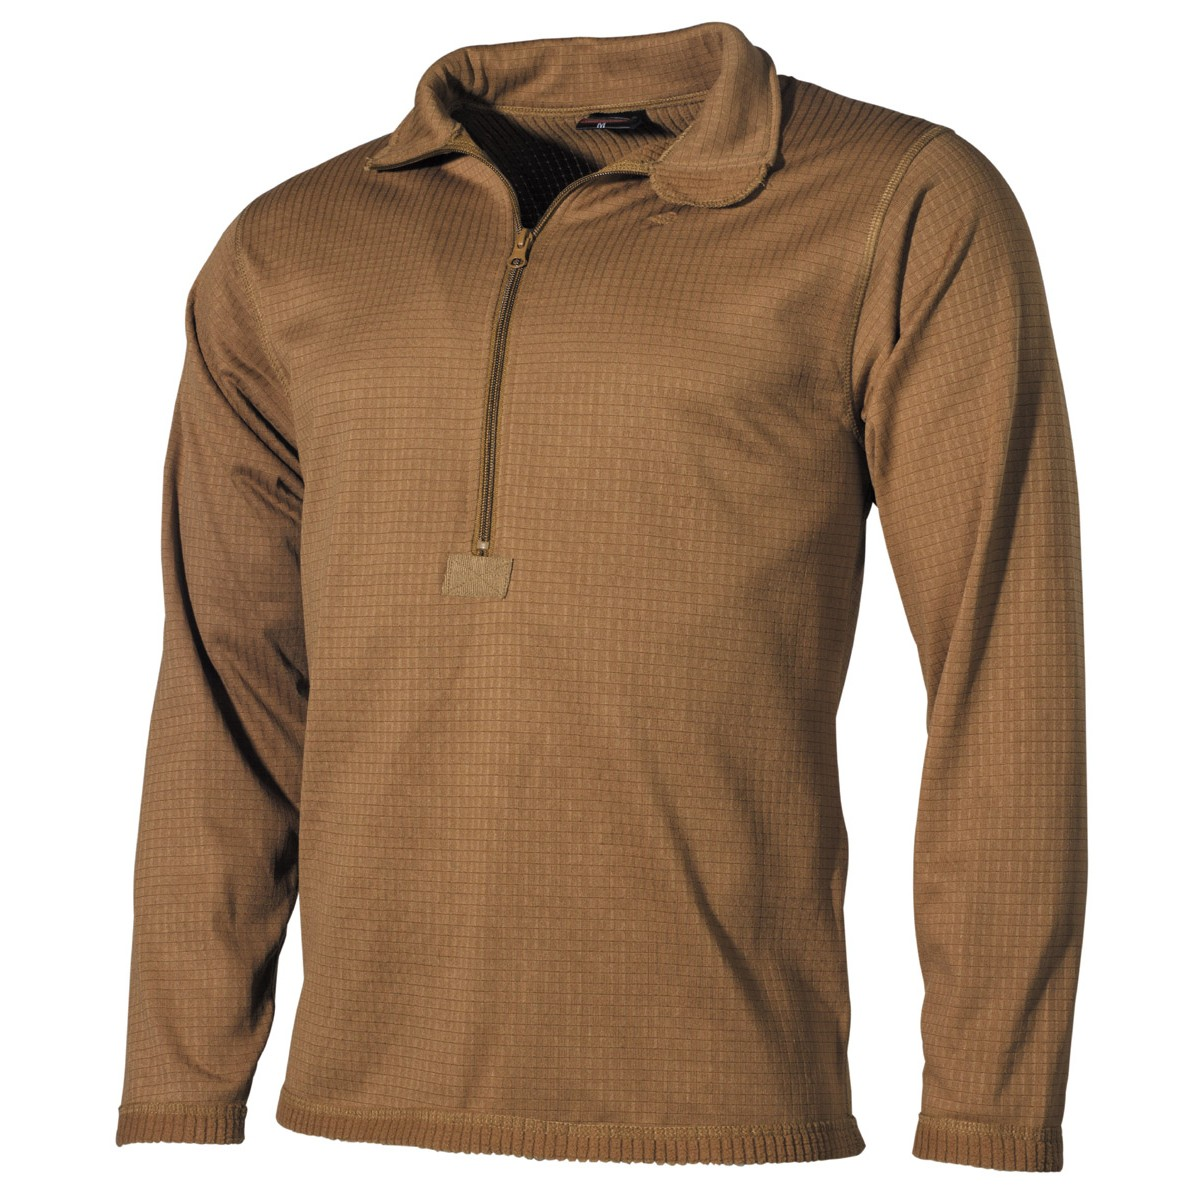 Military/Outdoor Undershirts Level 2 Gen.3 Breathable Moisture Control - Coyote